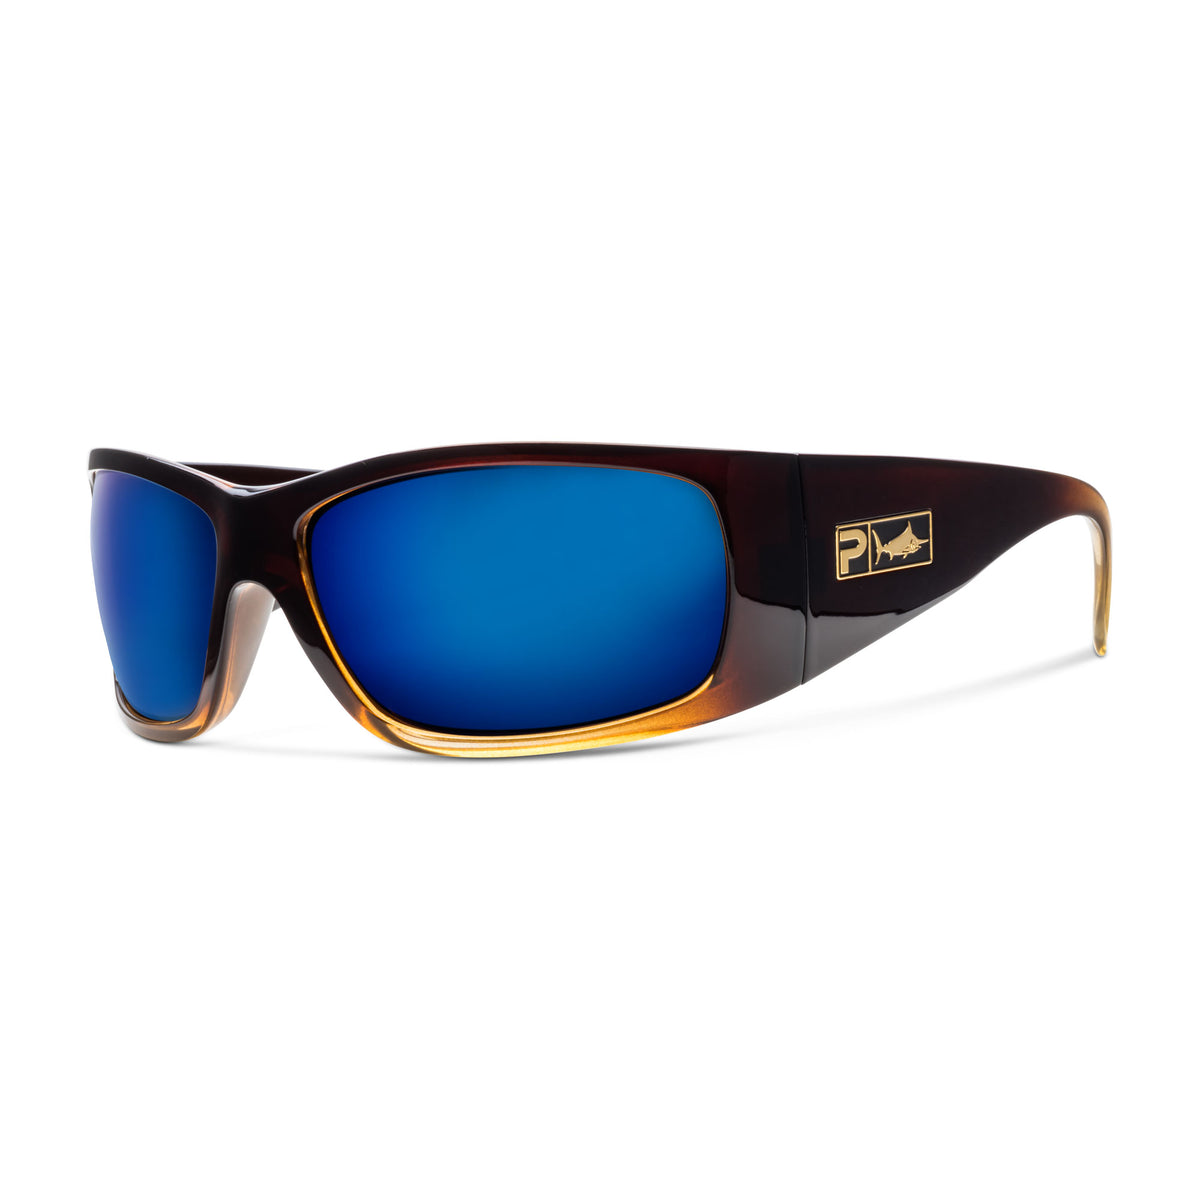 Twin Diesel - Polarized XP-700™ Polycarbonate Lens Big Image - 4